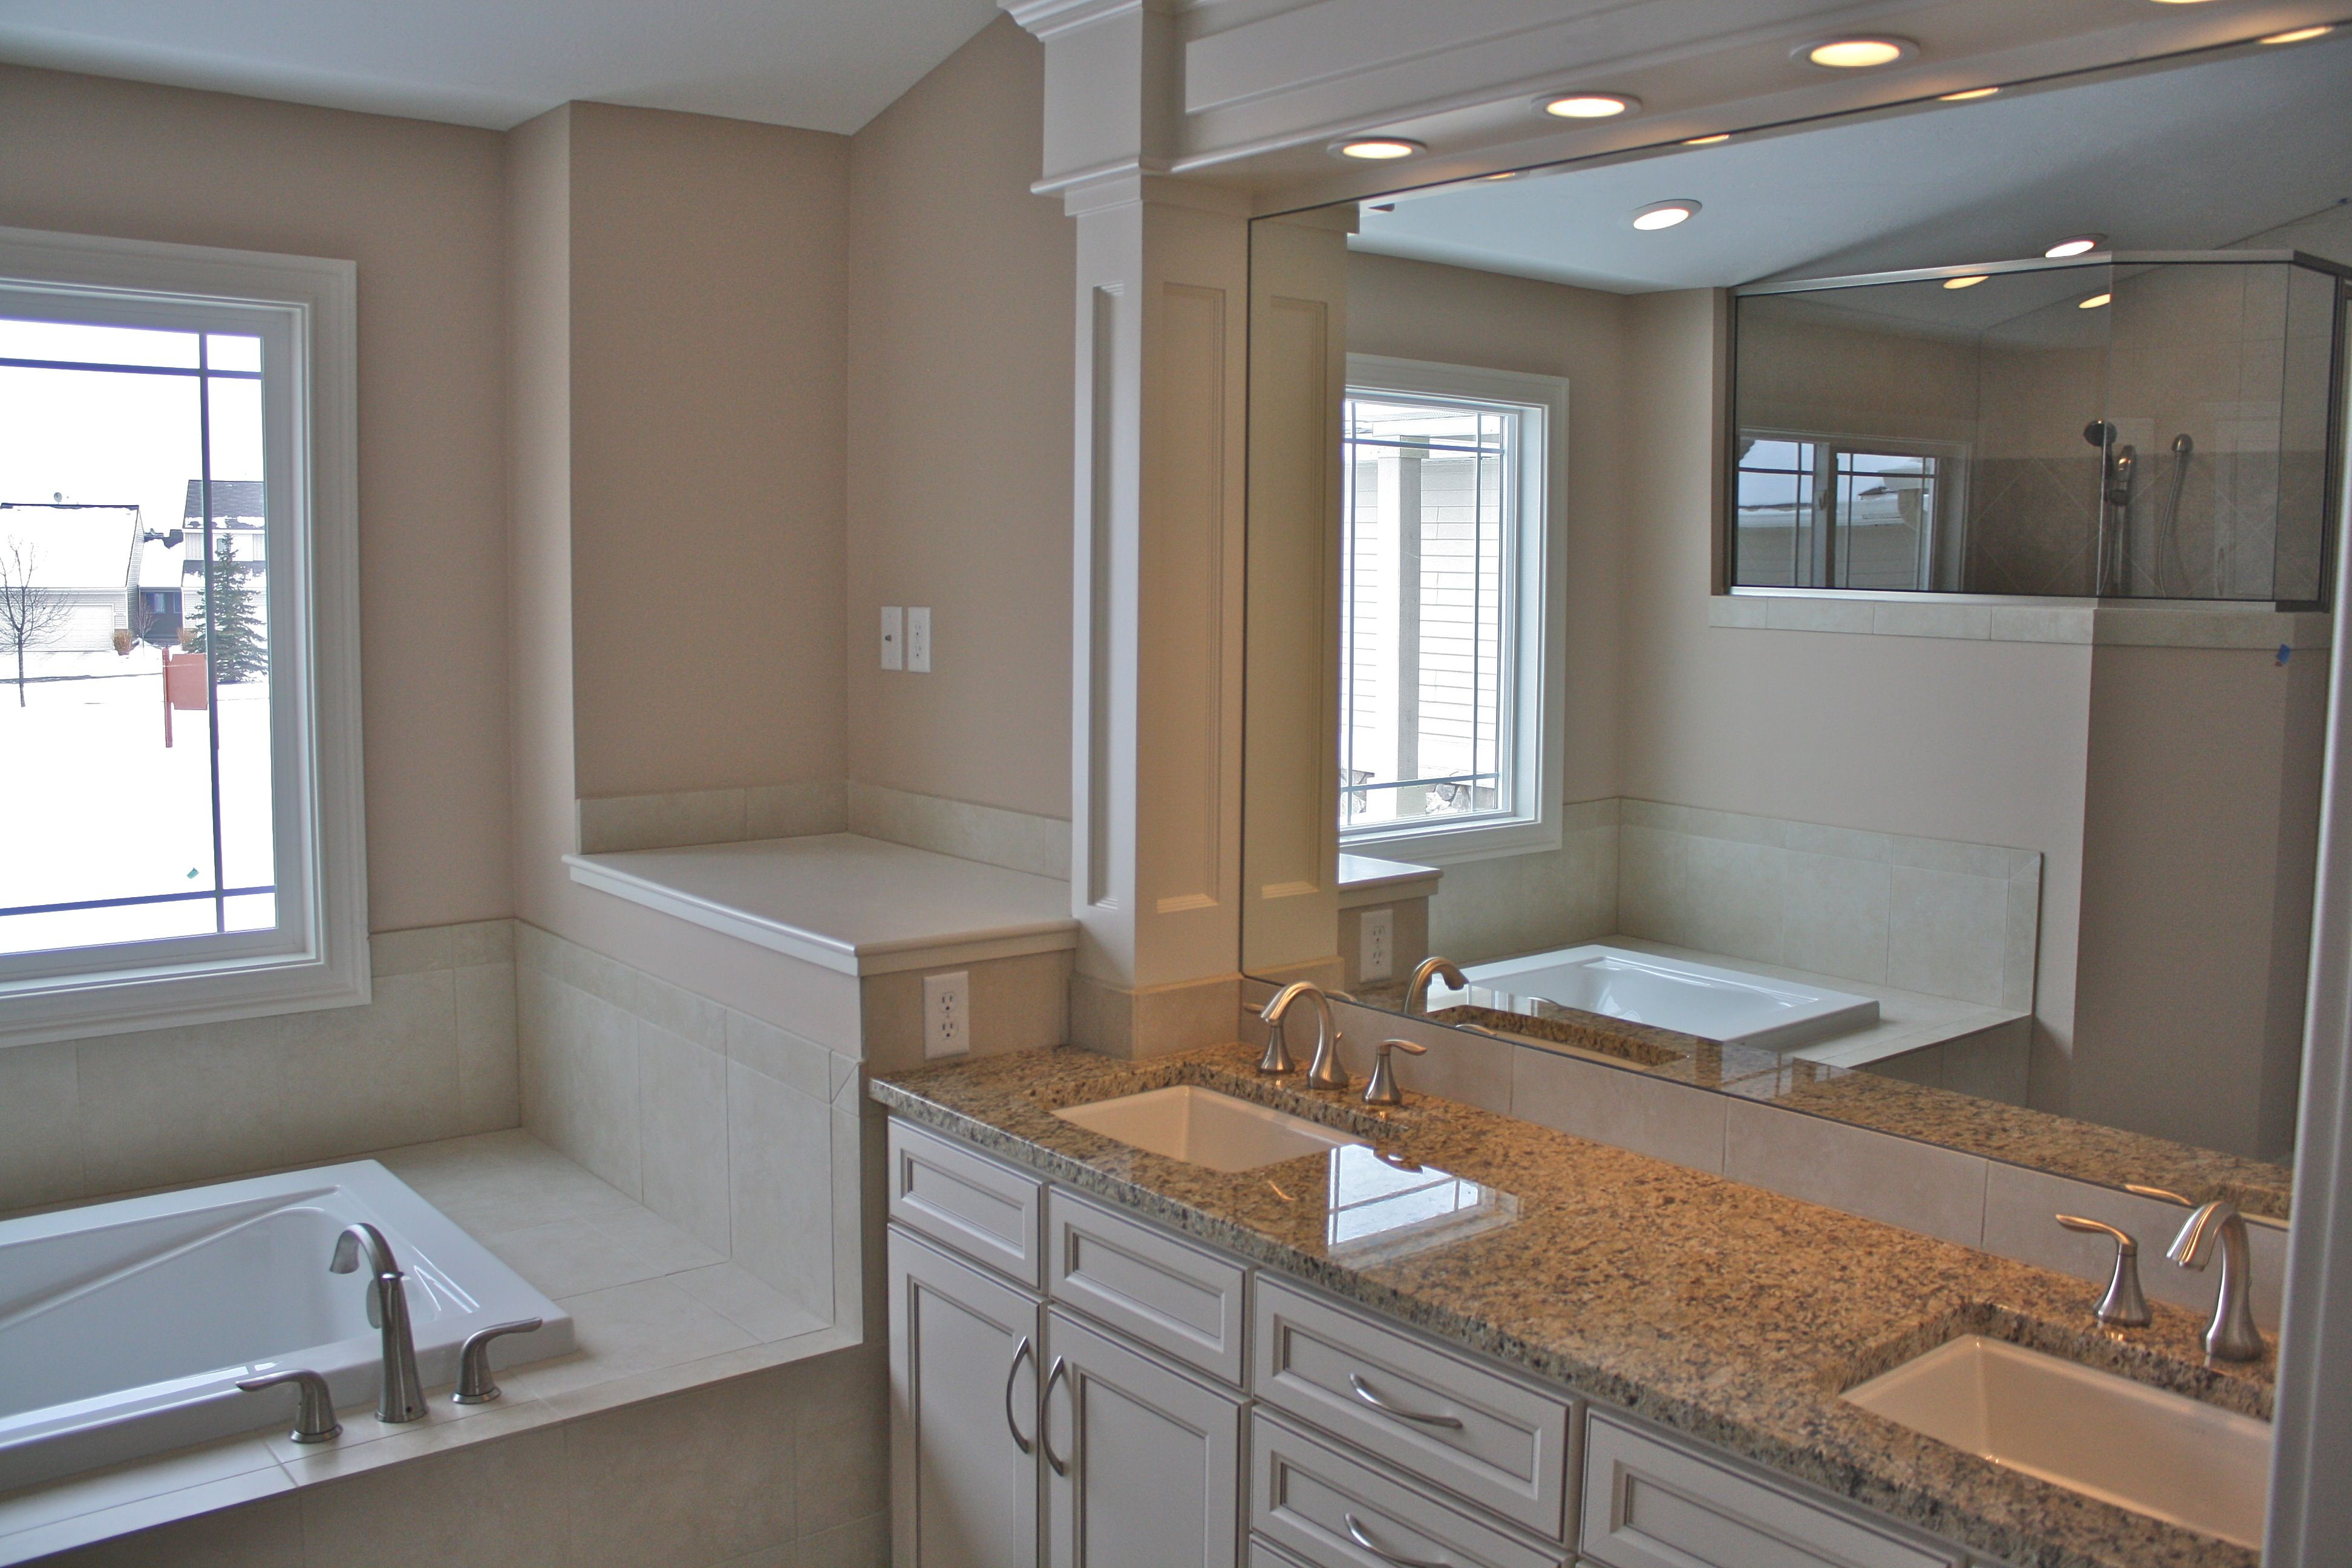 Re bath vanity home and garden show re bath for Master bathroom designs